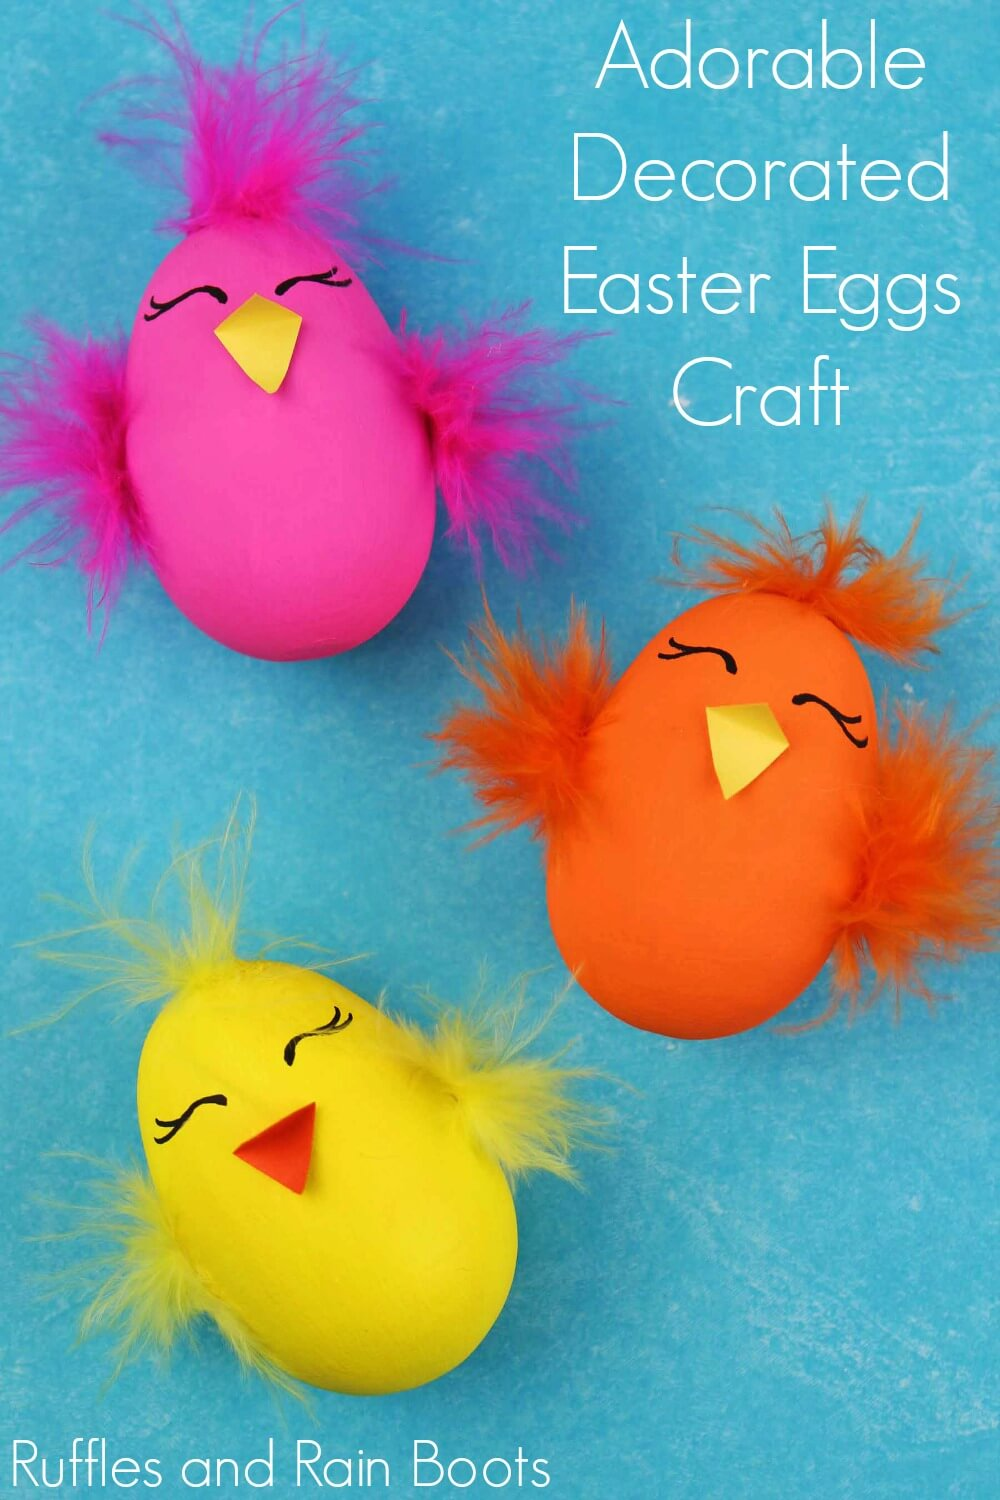 Adorable Chick Easter Egg Craft Ruffles And Rain Boots